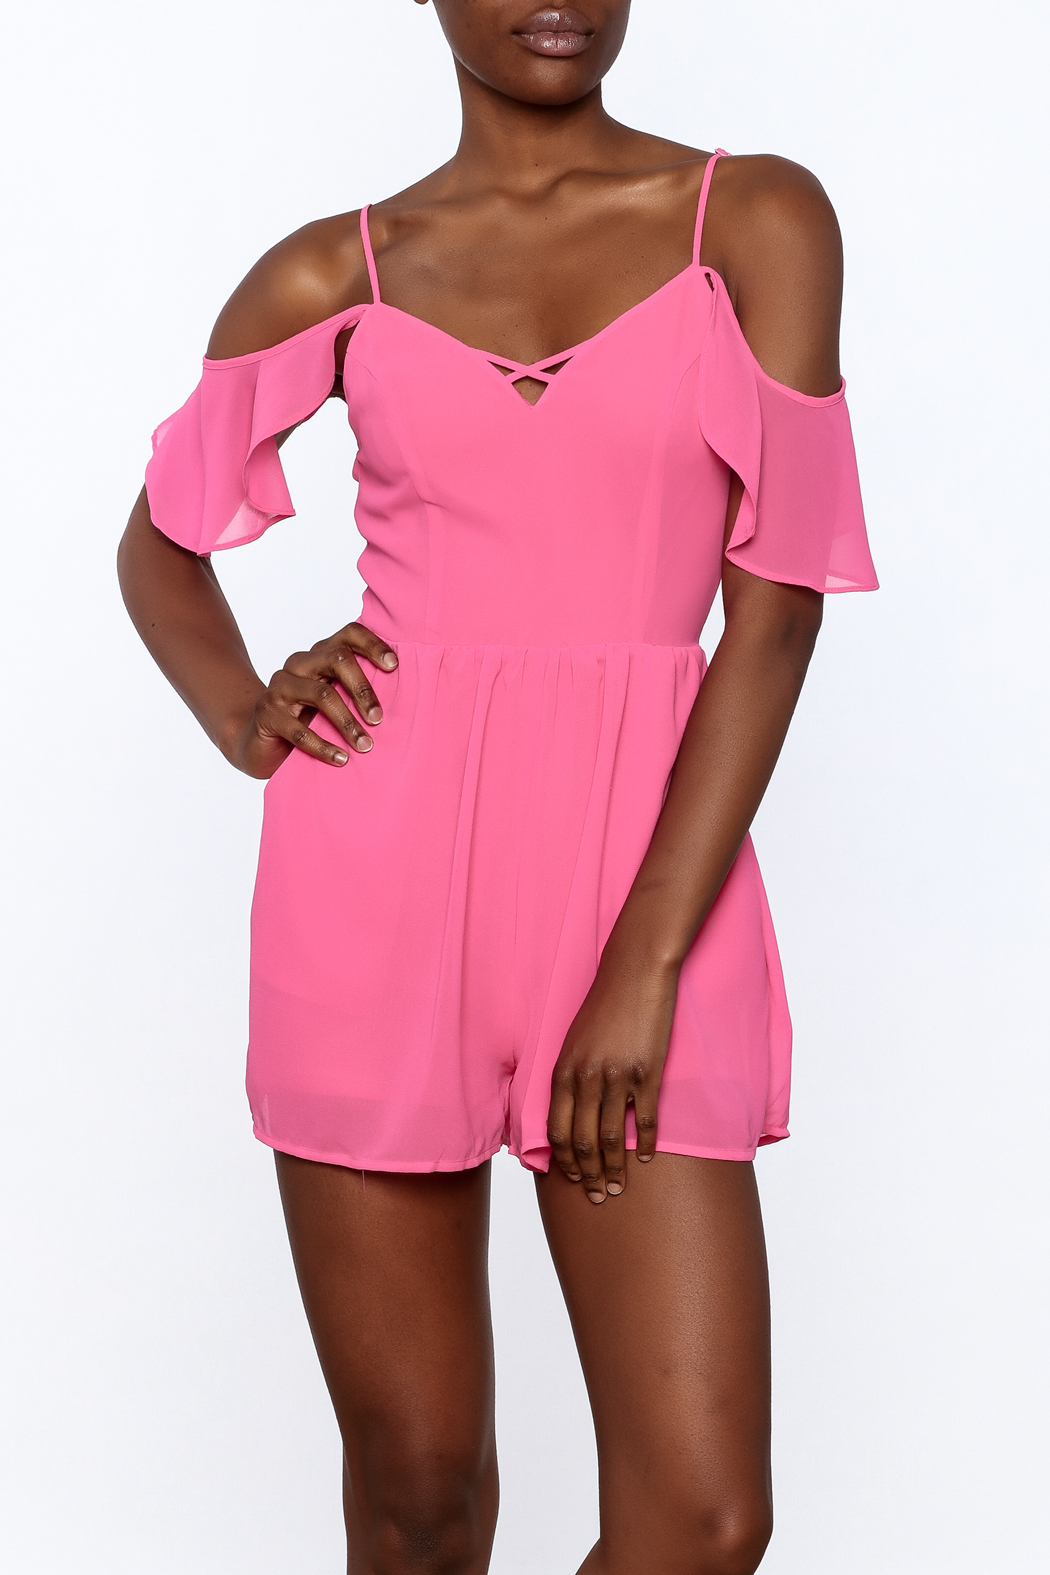 HYFVE Pink Ruffle Romper - Front Cropped Image